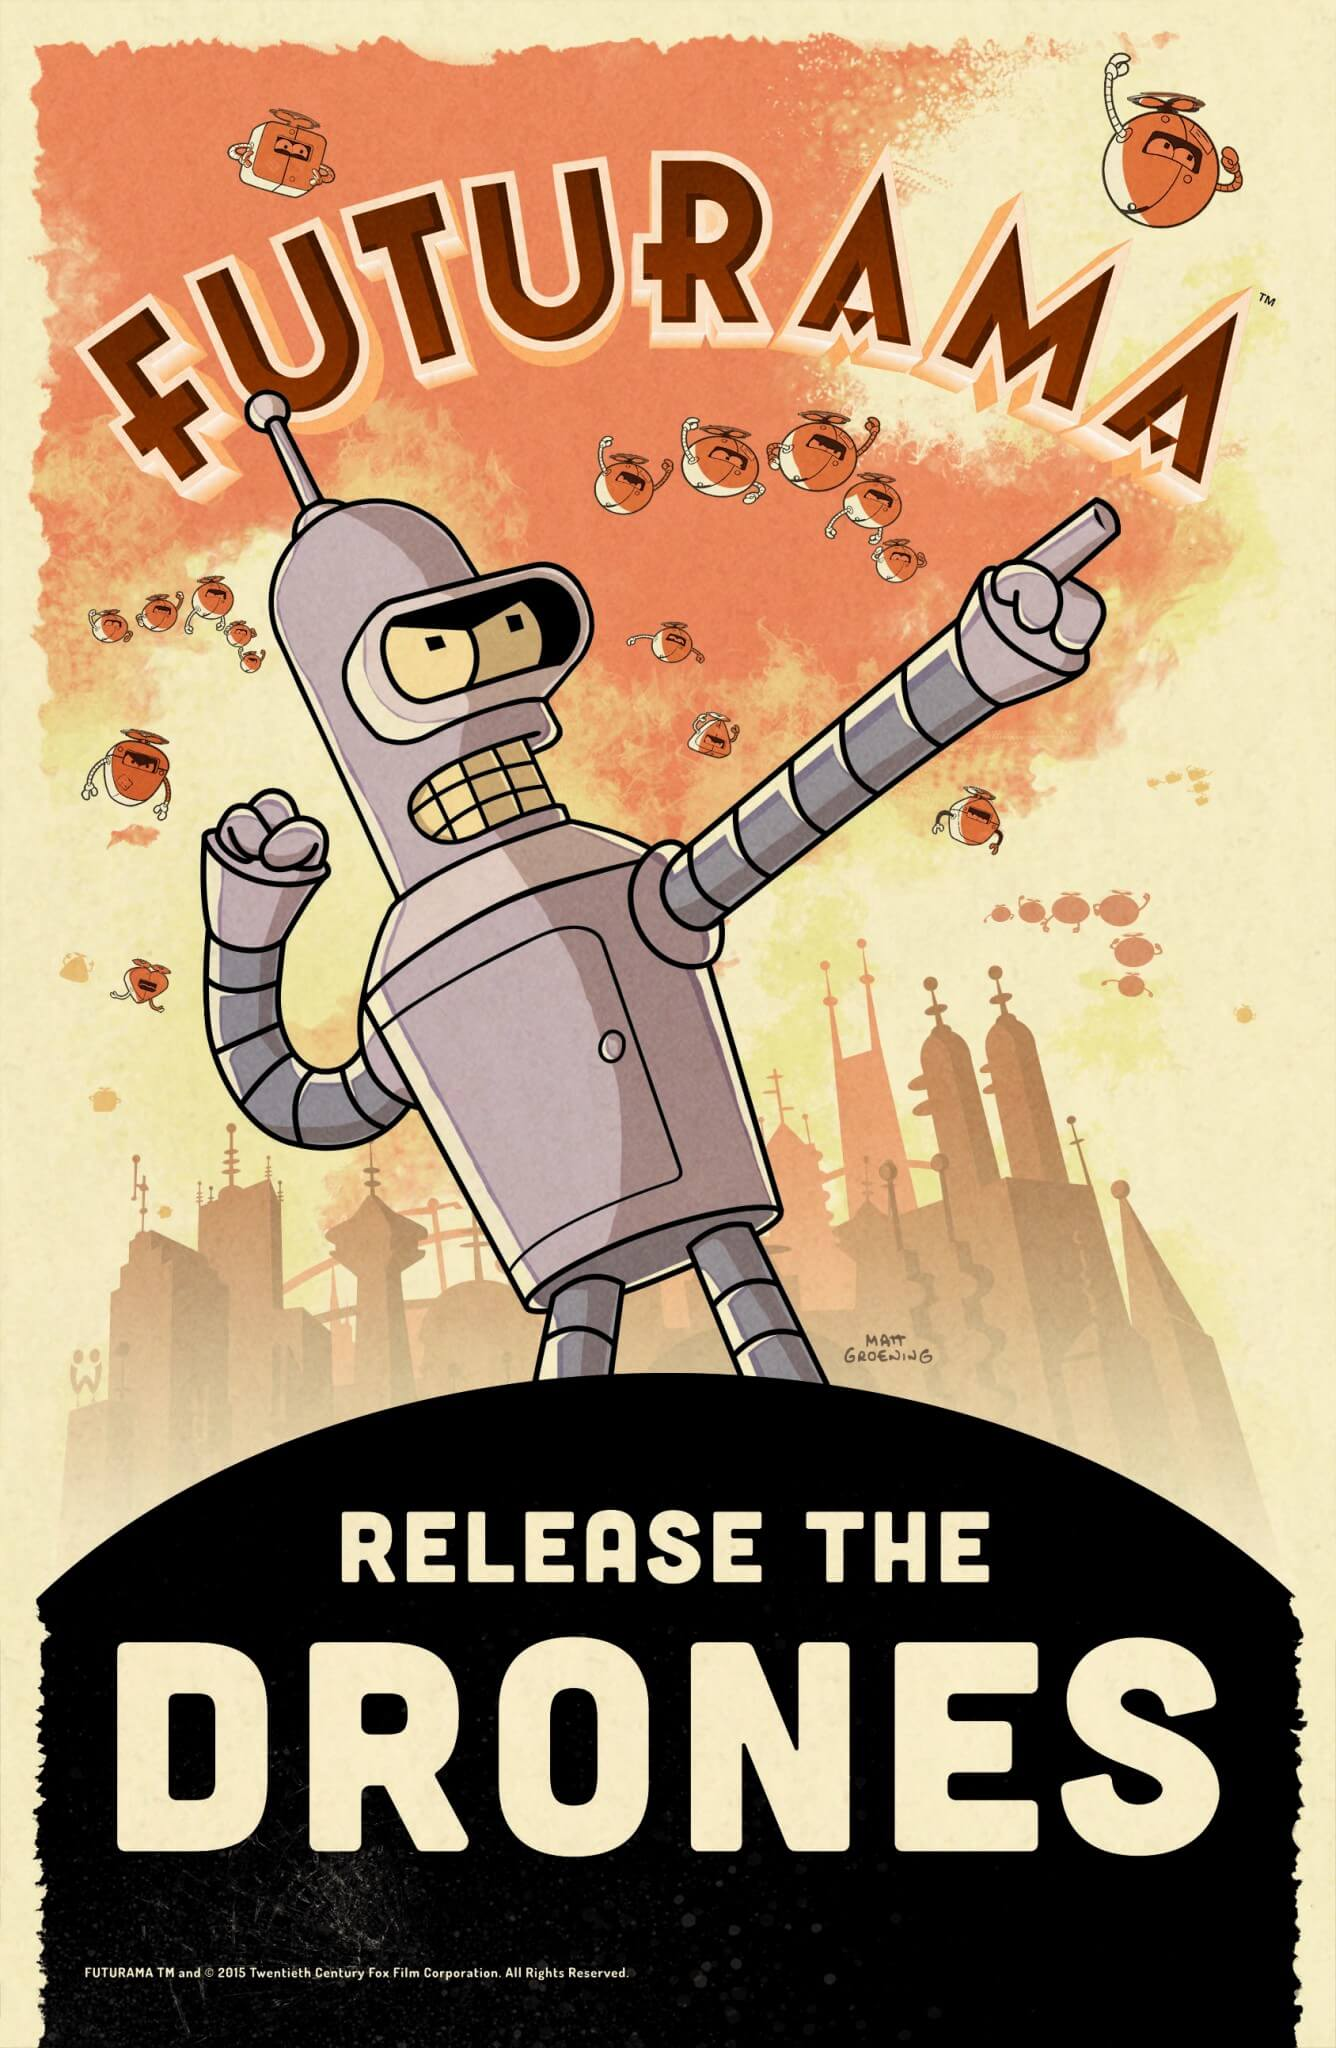 Futurama: Release The Drones (Bildrechte: Wooga)